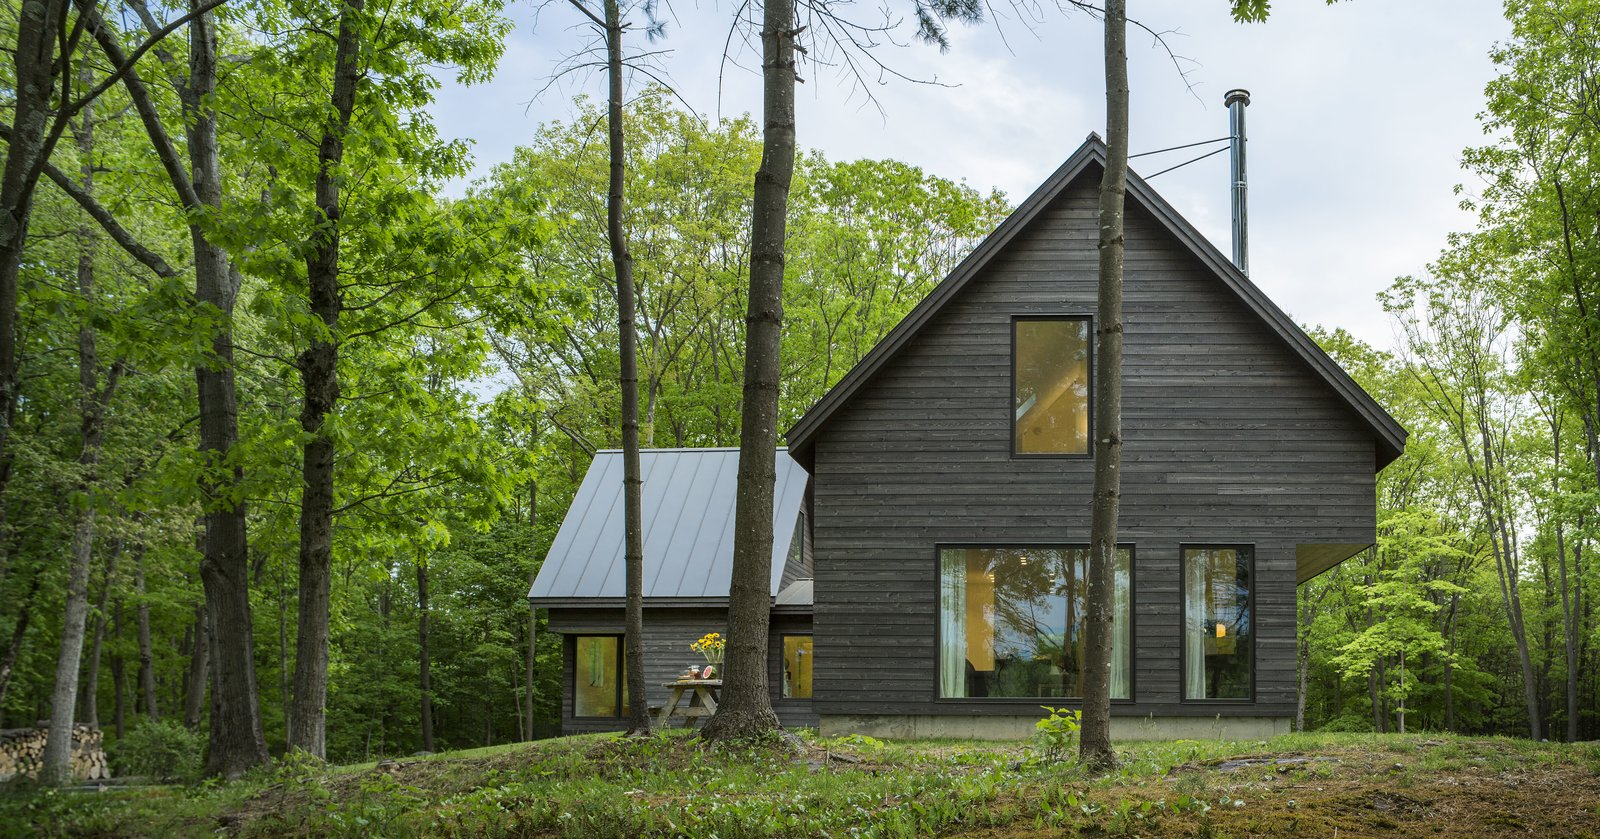 Architect Elizabeth Herrmann's Knoll House project, Best Transitional category winner of 2017 Marvin Architects Challenge.   Tagged: Outdoor, Trees, Side Yard, and Grass.  Knoll House by Marvin Windows and Doors